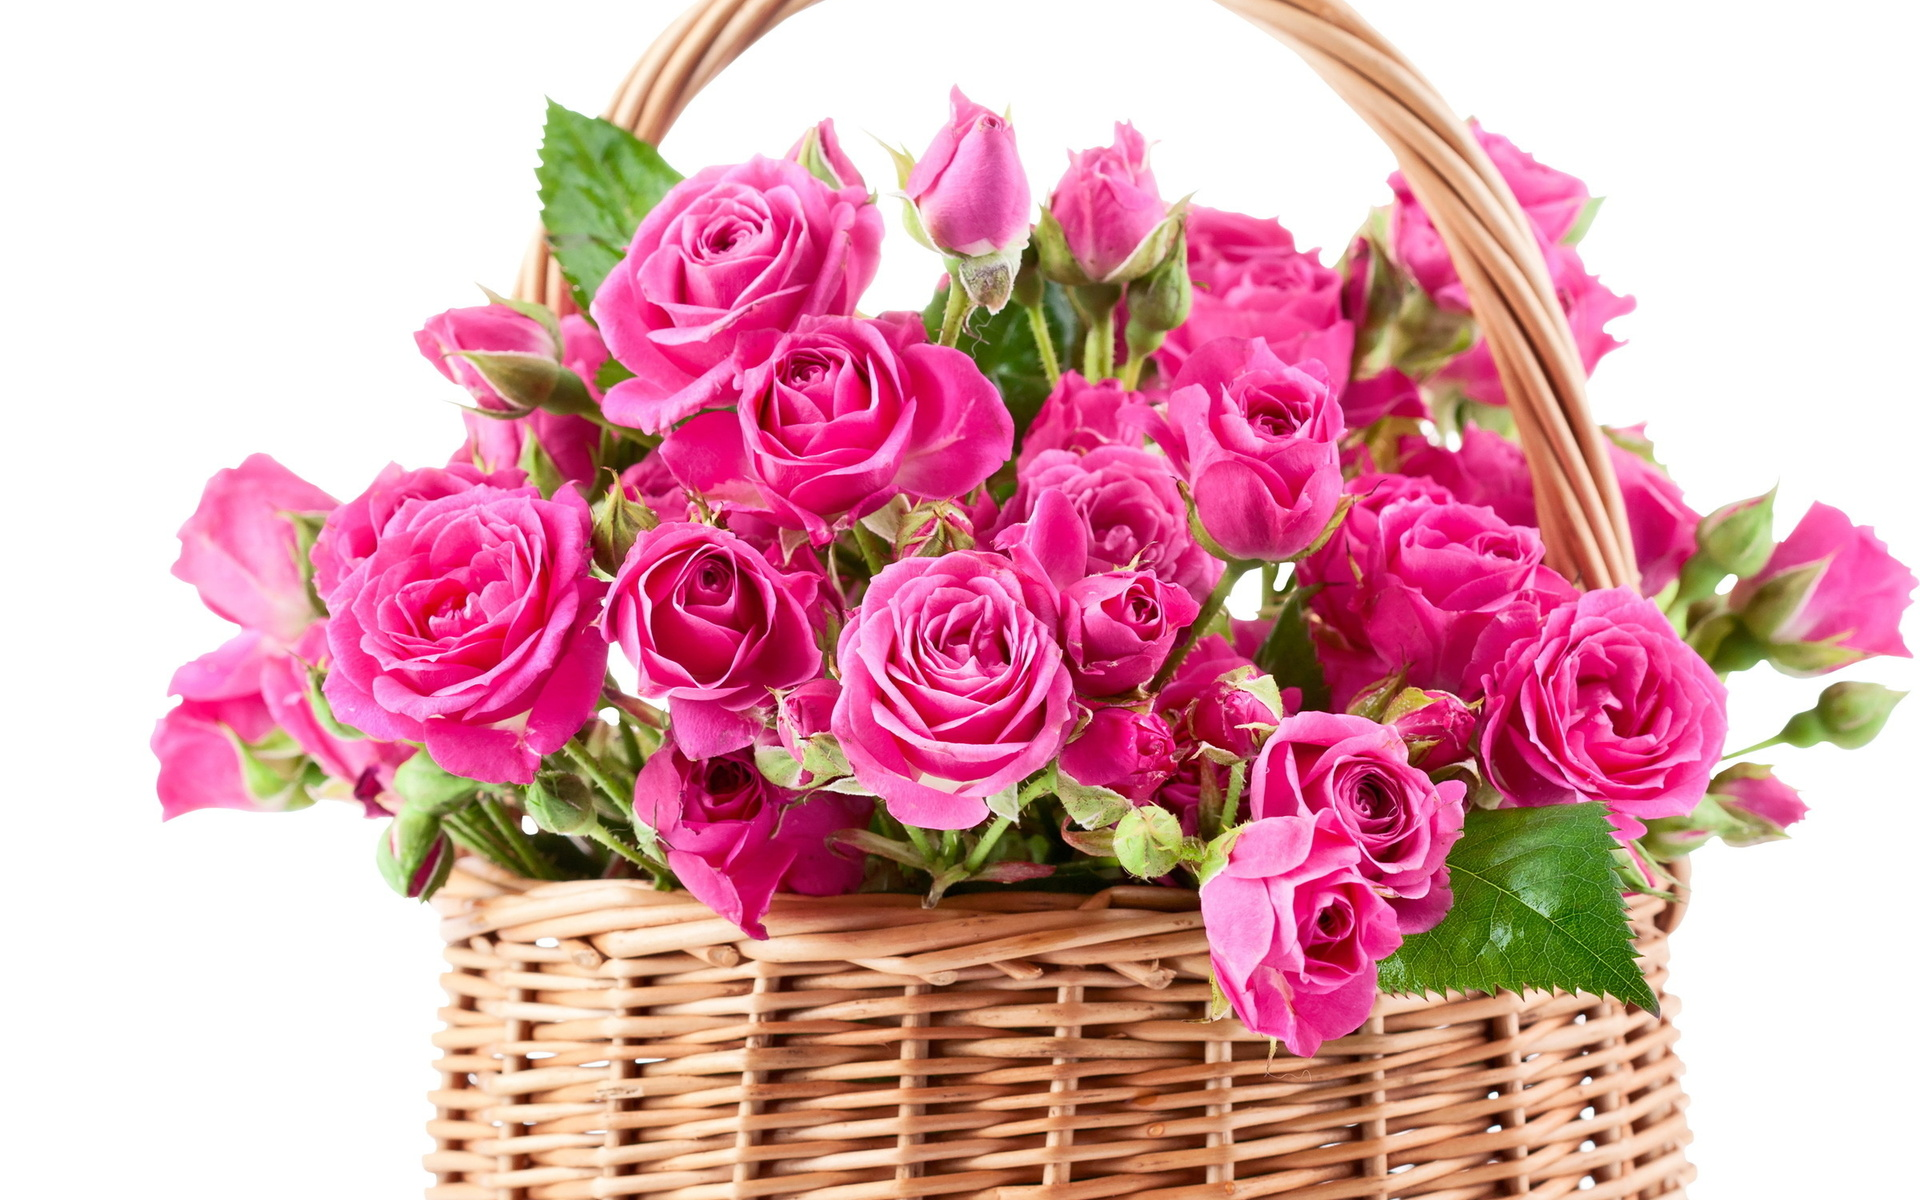 Bouquet of flowers wallpapers high quality download free - Bouquet of red roses hd images ...